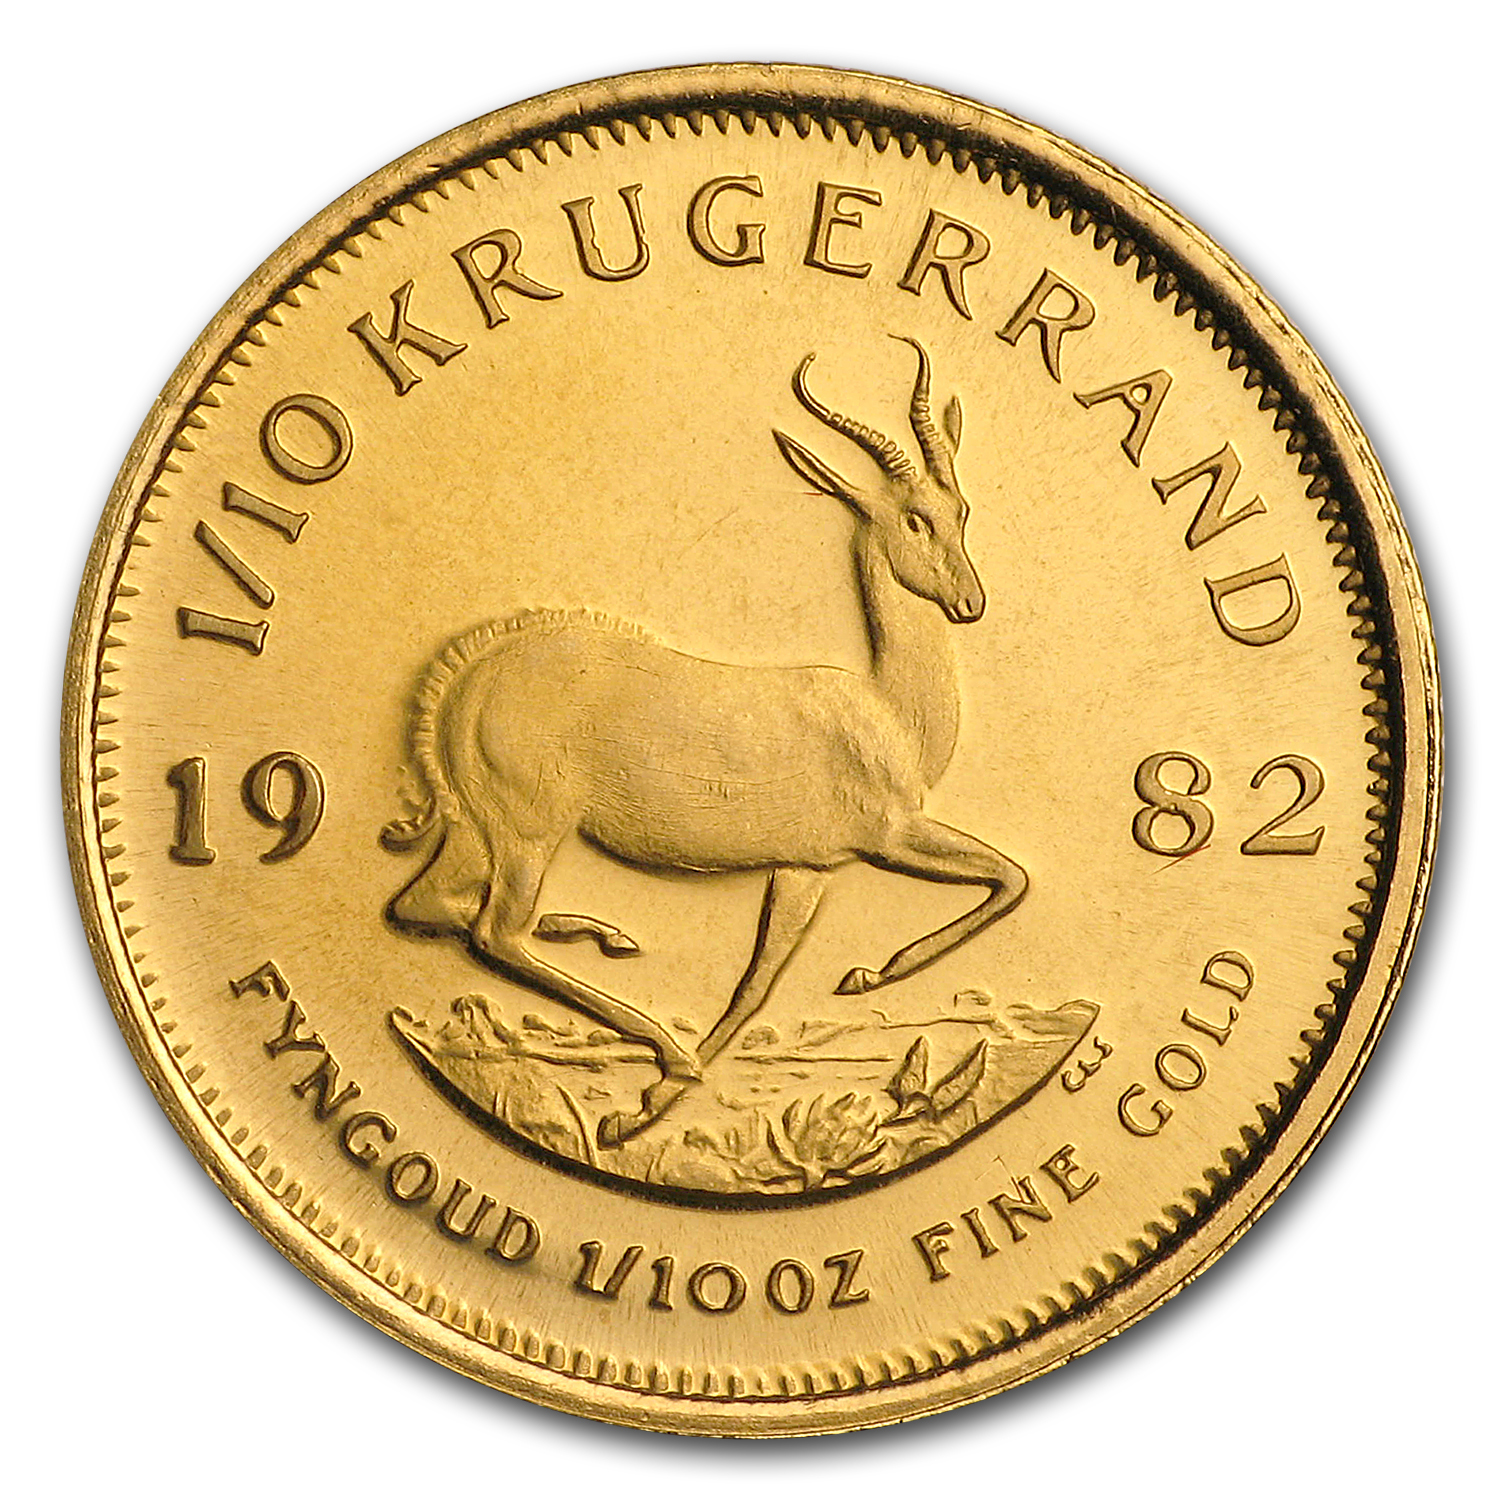 1982 South Africa 1/10 oz Proof Gold Krugerrand